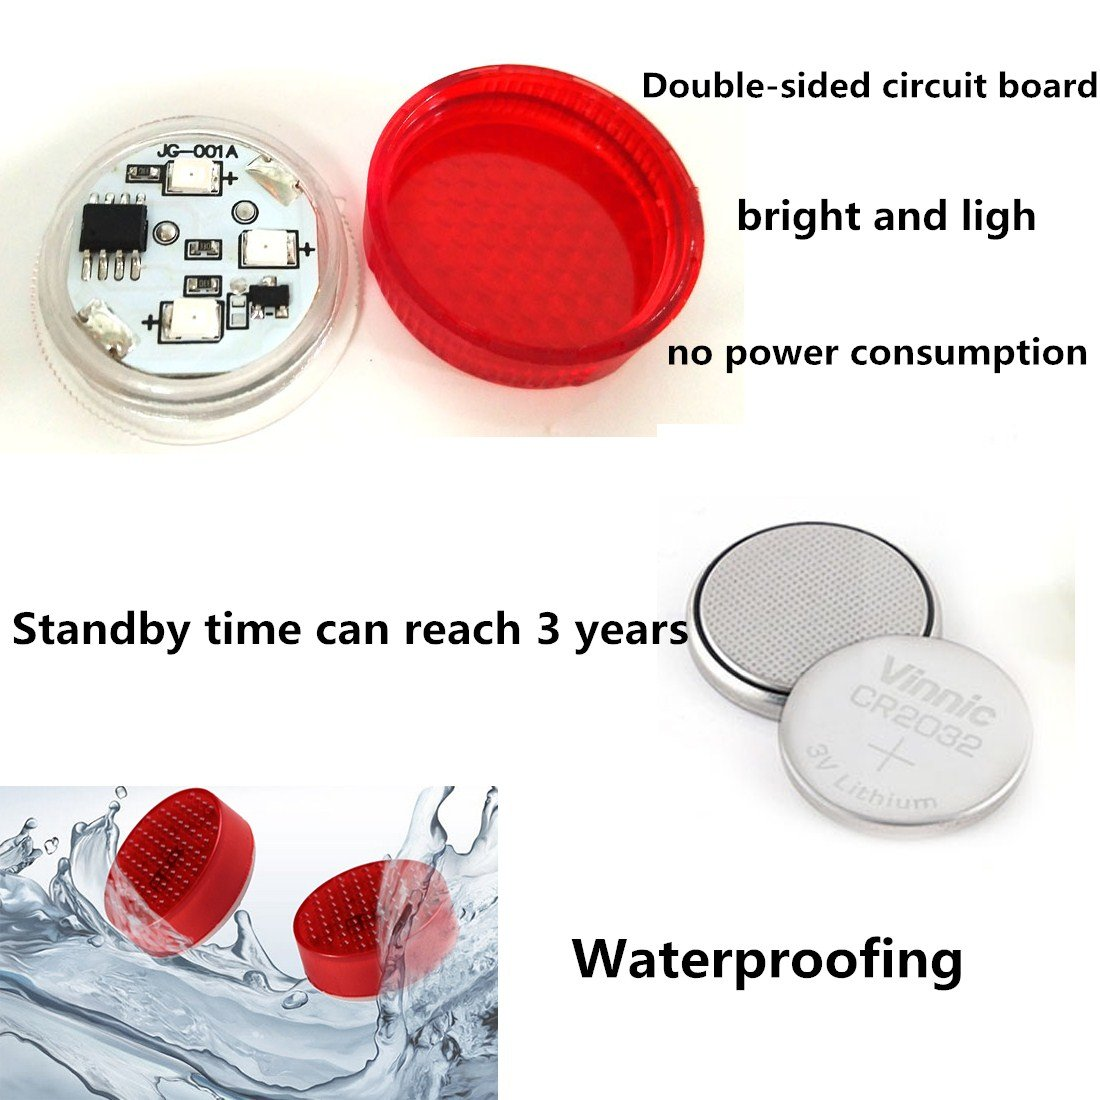 Amazon car door warning light with red strobe flashing led amazon car door warning light with red strobe flashing led open safety lights reflecto led lamps magnetic waterproof wireless universal red flash biocorpaavc